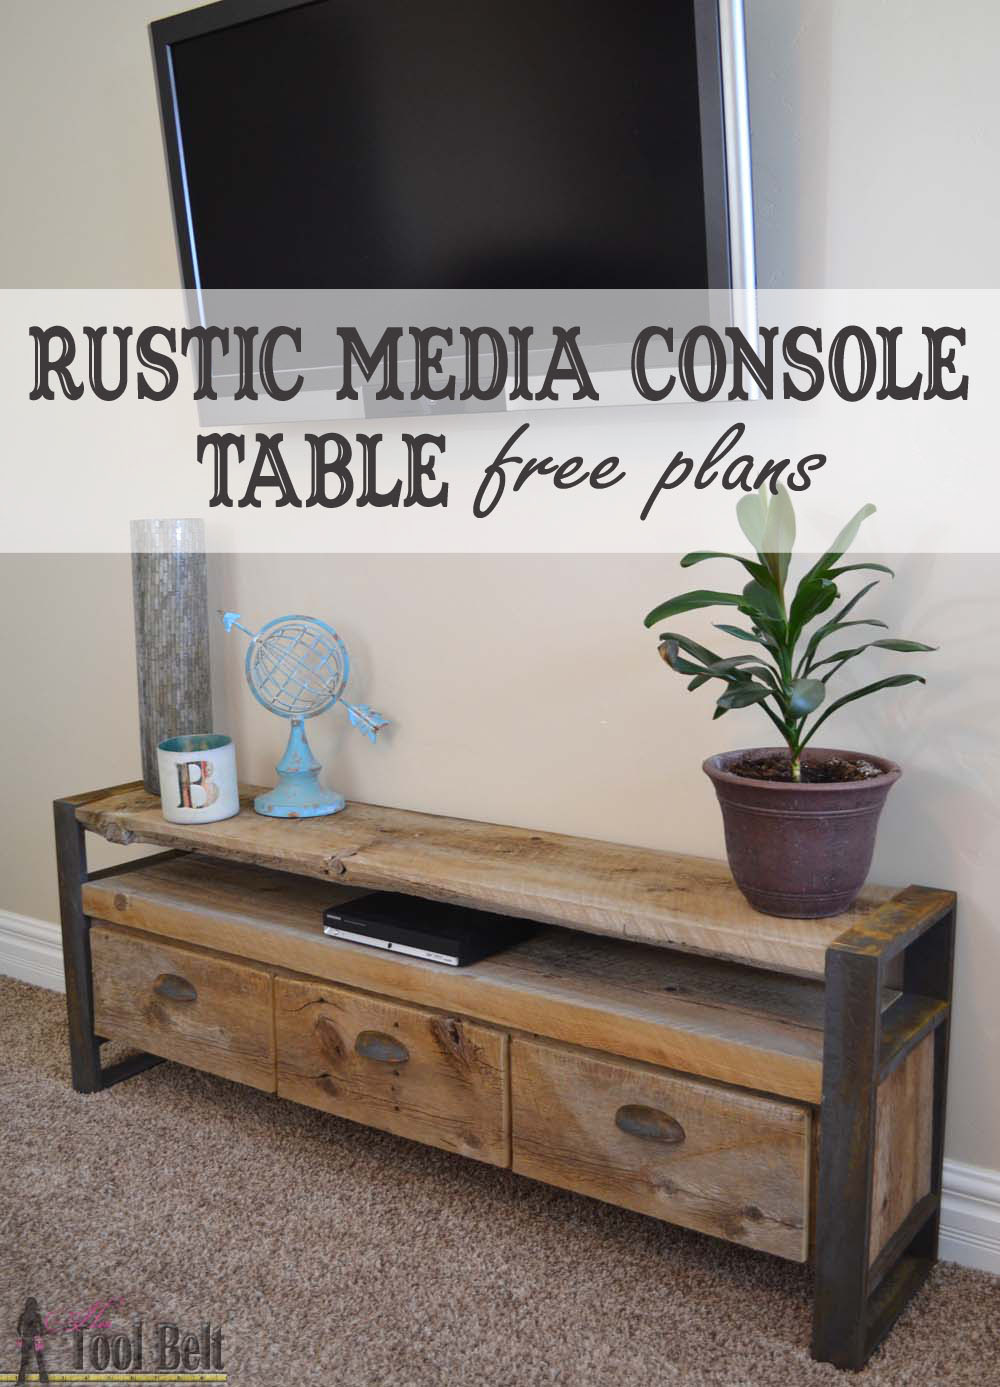 Reclaimed lumber makes the coolest projects. Free plans to build a unique  rustic media console - Rustic Media Console Table - Her Tool Belt